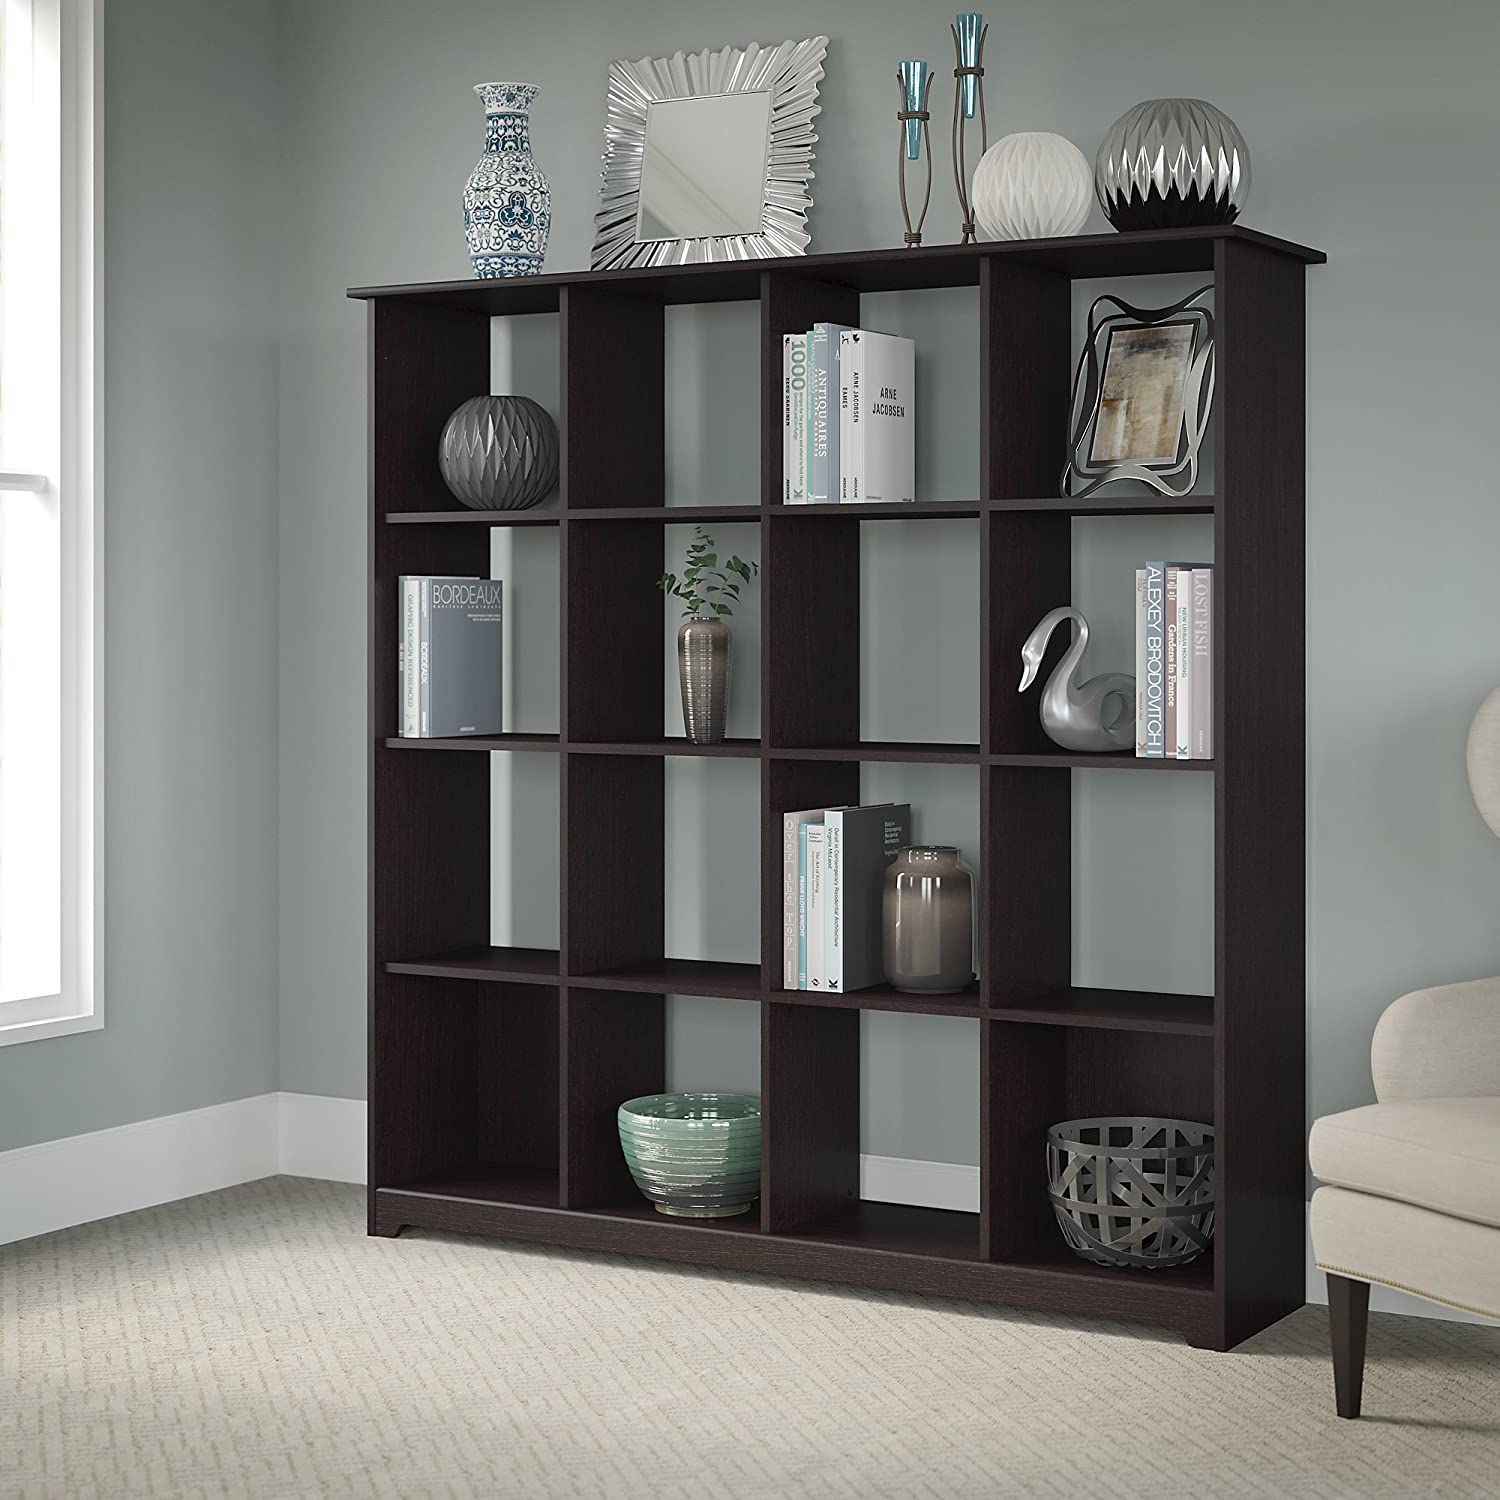 Cabot 16 Cube Bookcase Bush Industries WC31803-03